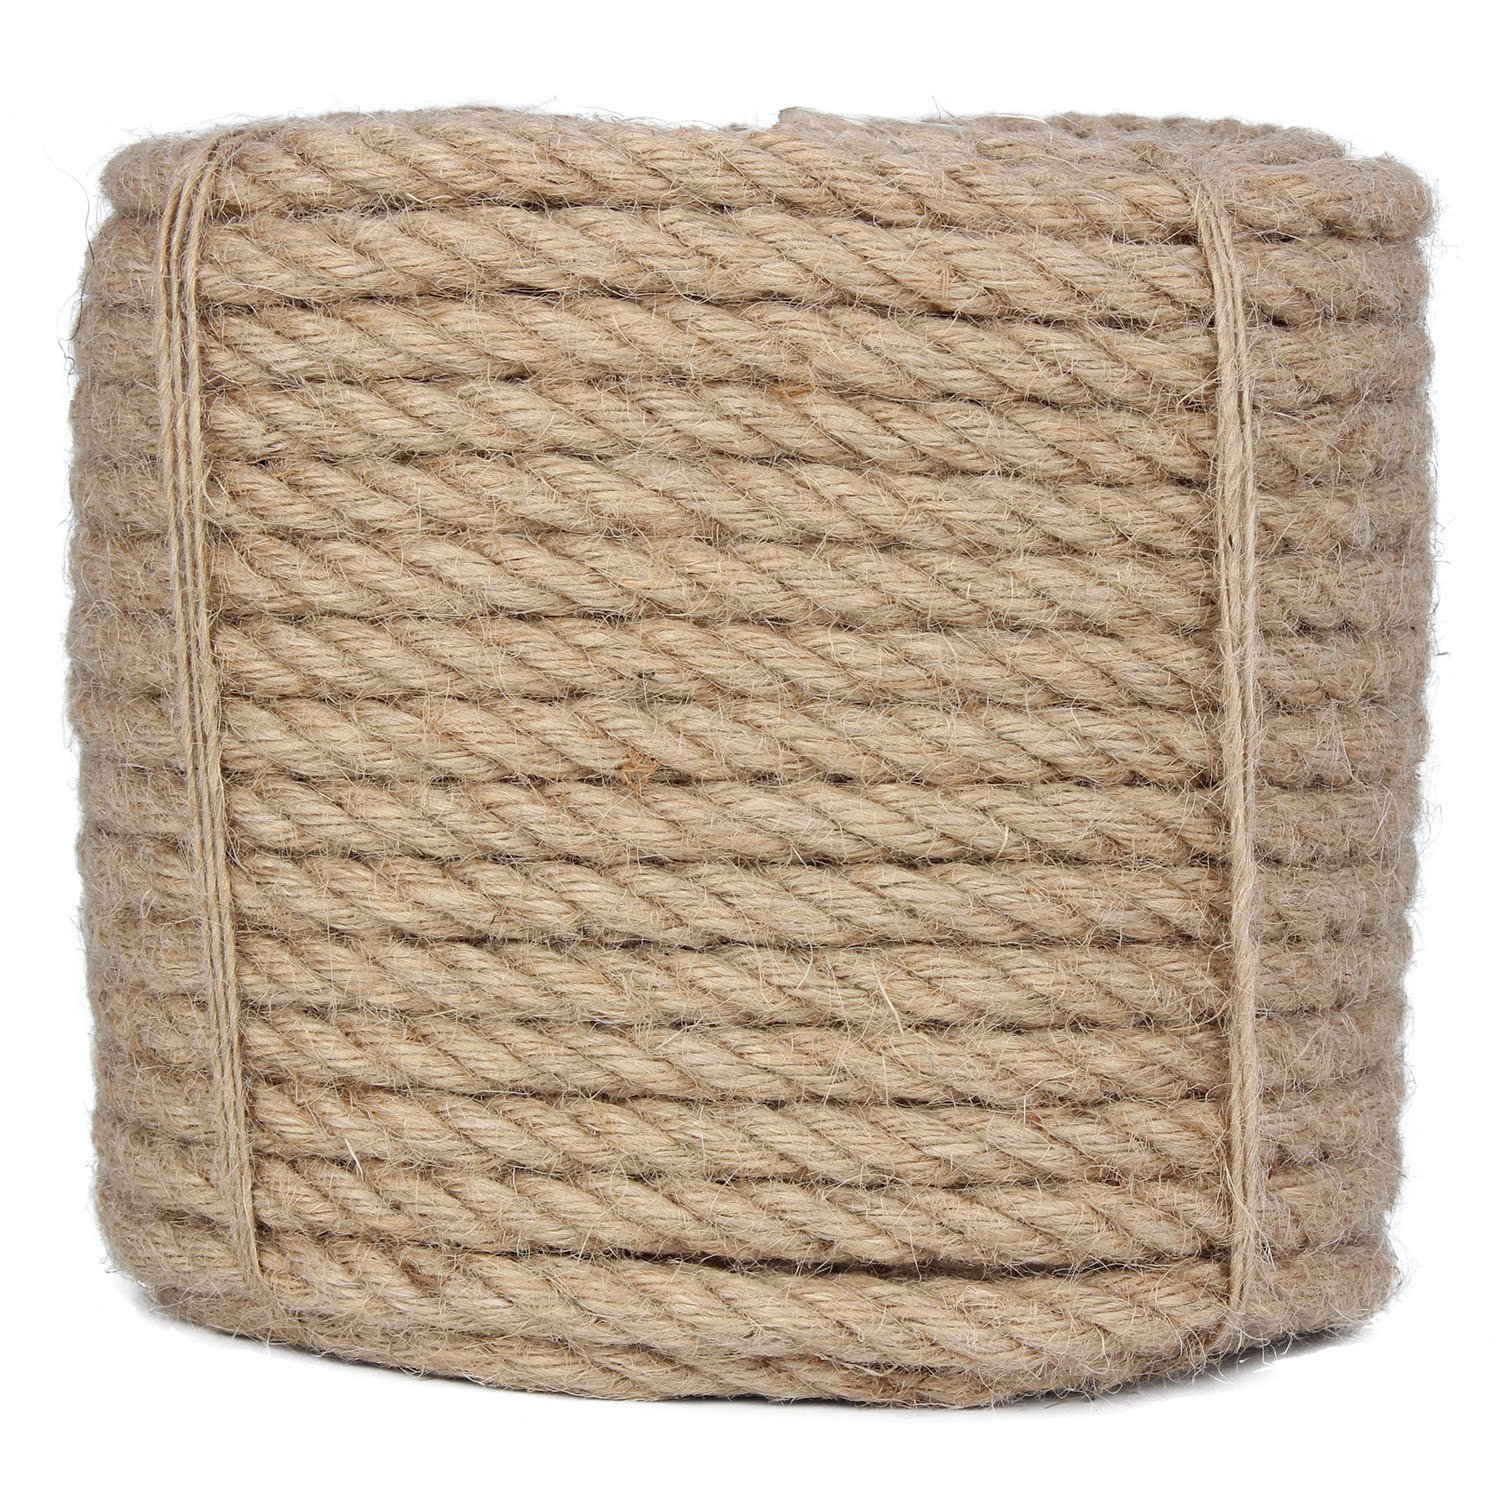 100 Feet 2/5-Inch Natural Jute Twine Hemp String Christmas Twine String Packing Materials Durable Hemp Twine for Gardening